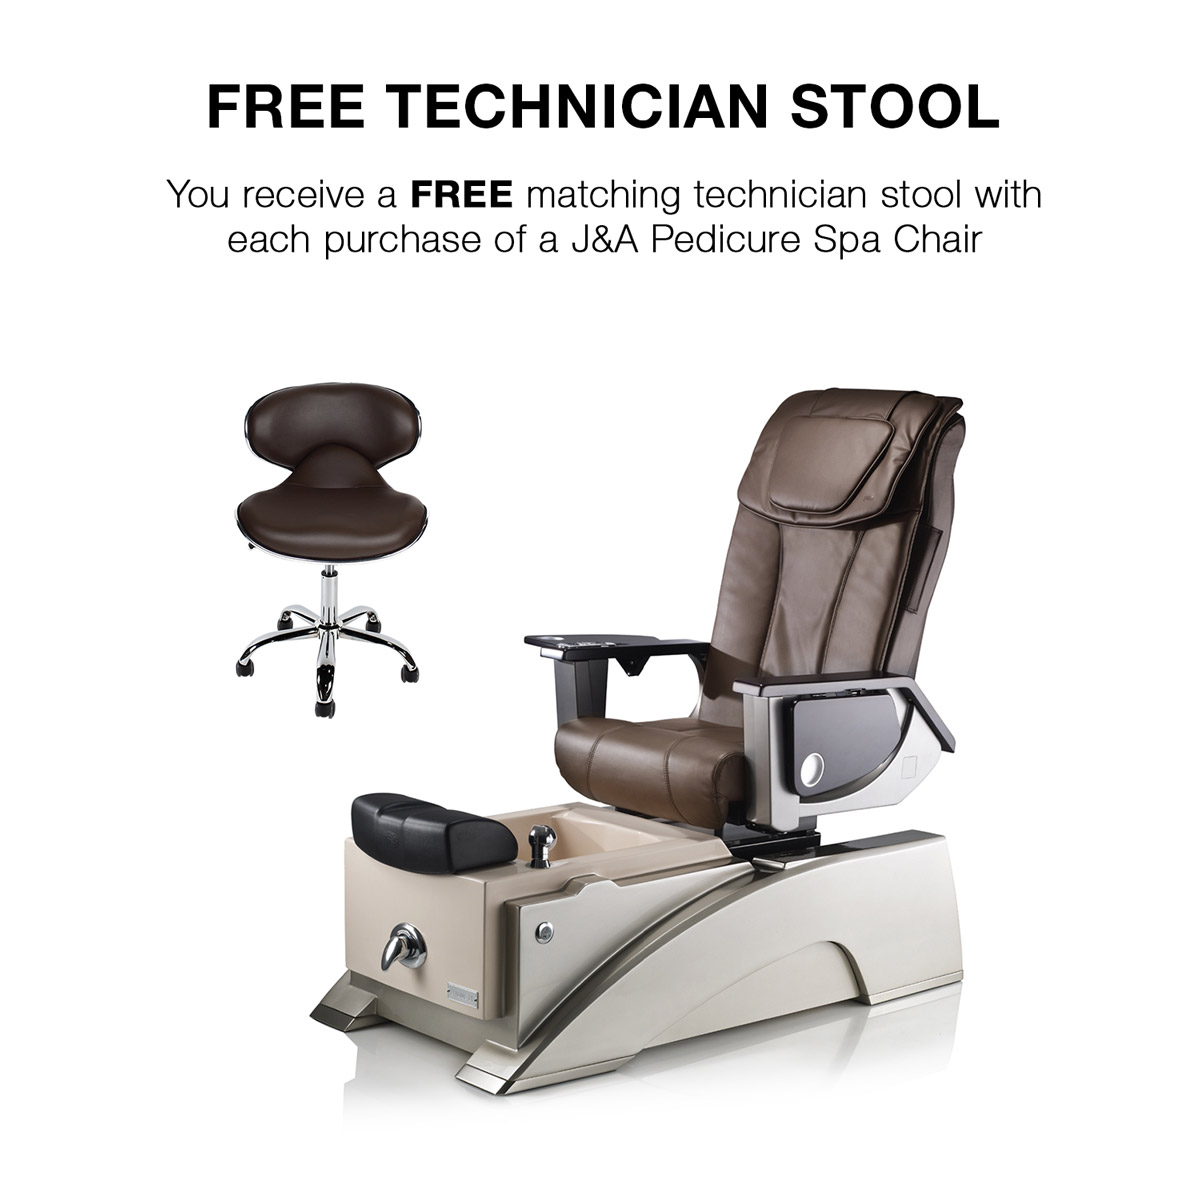 Episode LX Pedicure Massage Spa Chair alternative product image 2